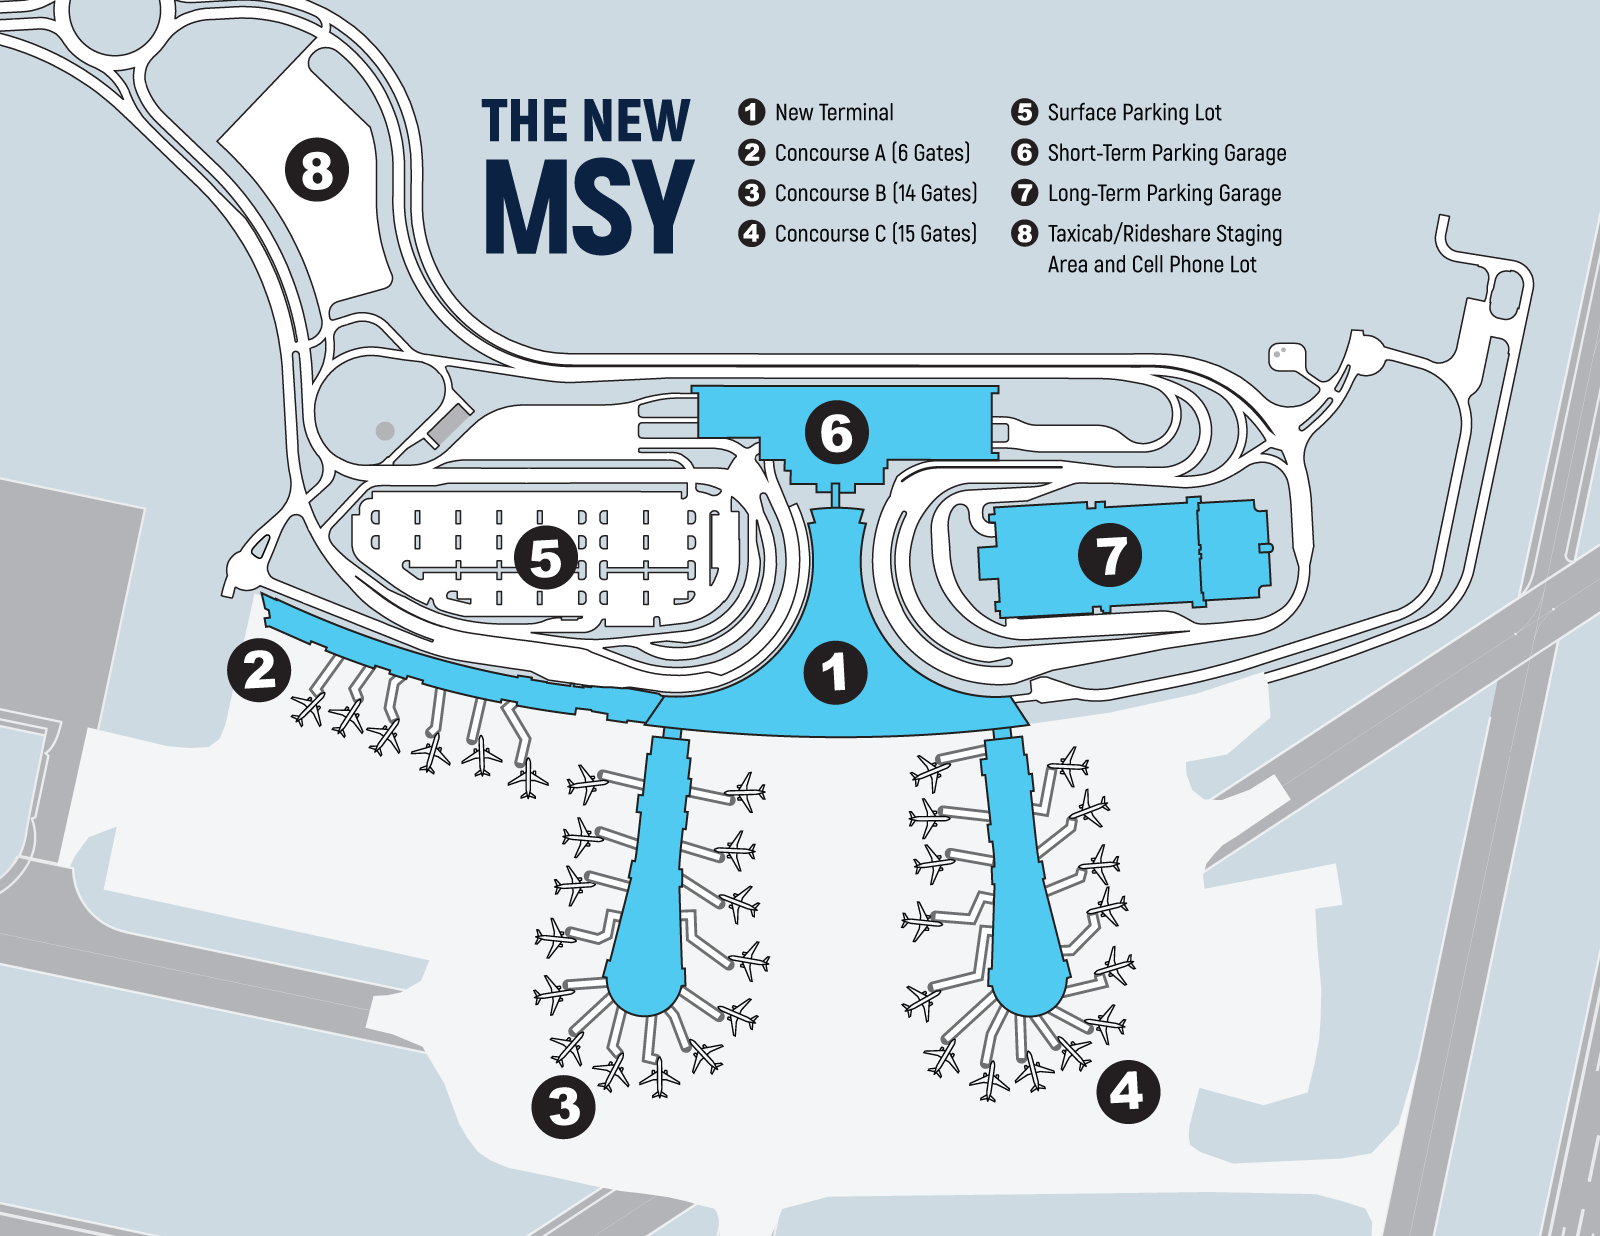 new orleans terminal map The Facility The New Msy Get Updates new orleans terminal map